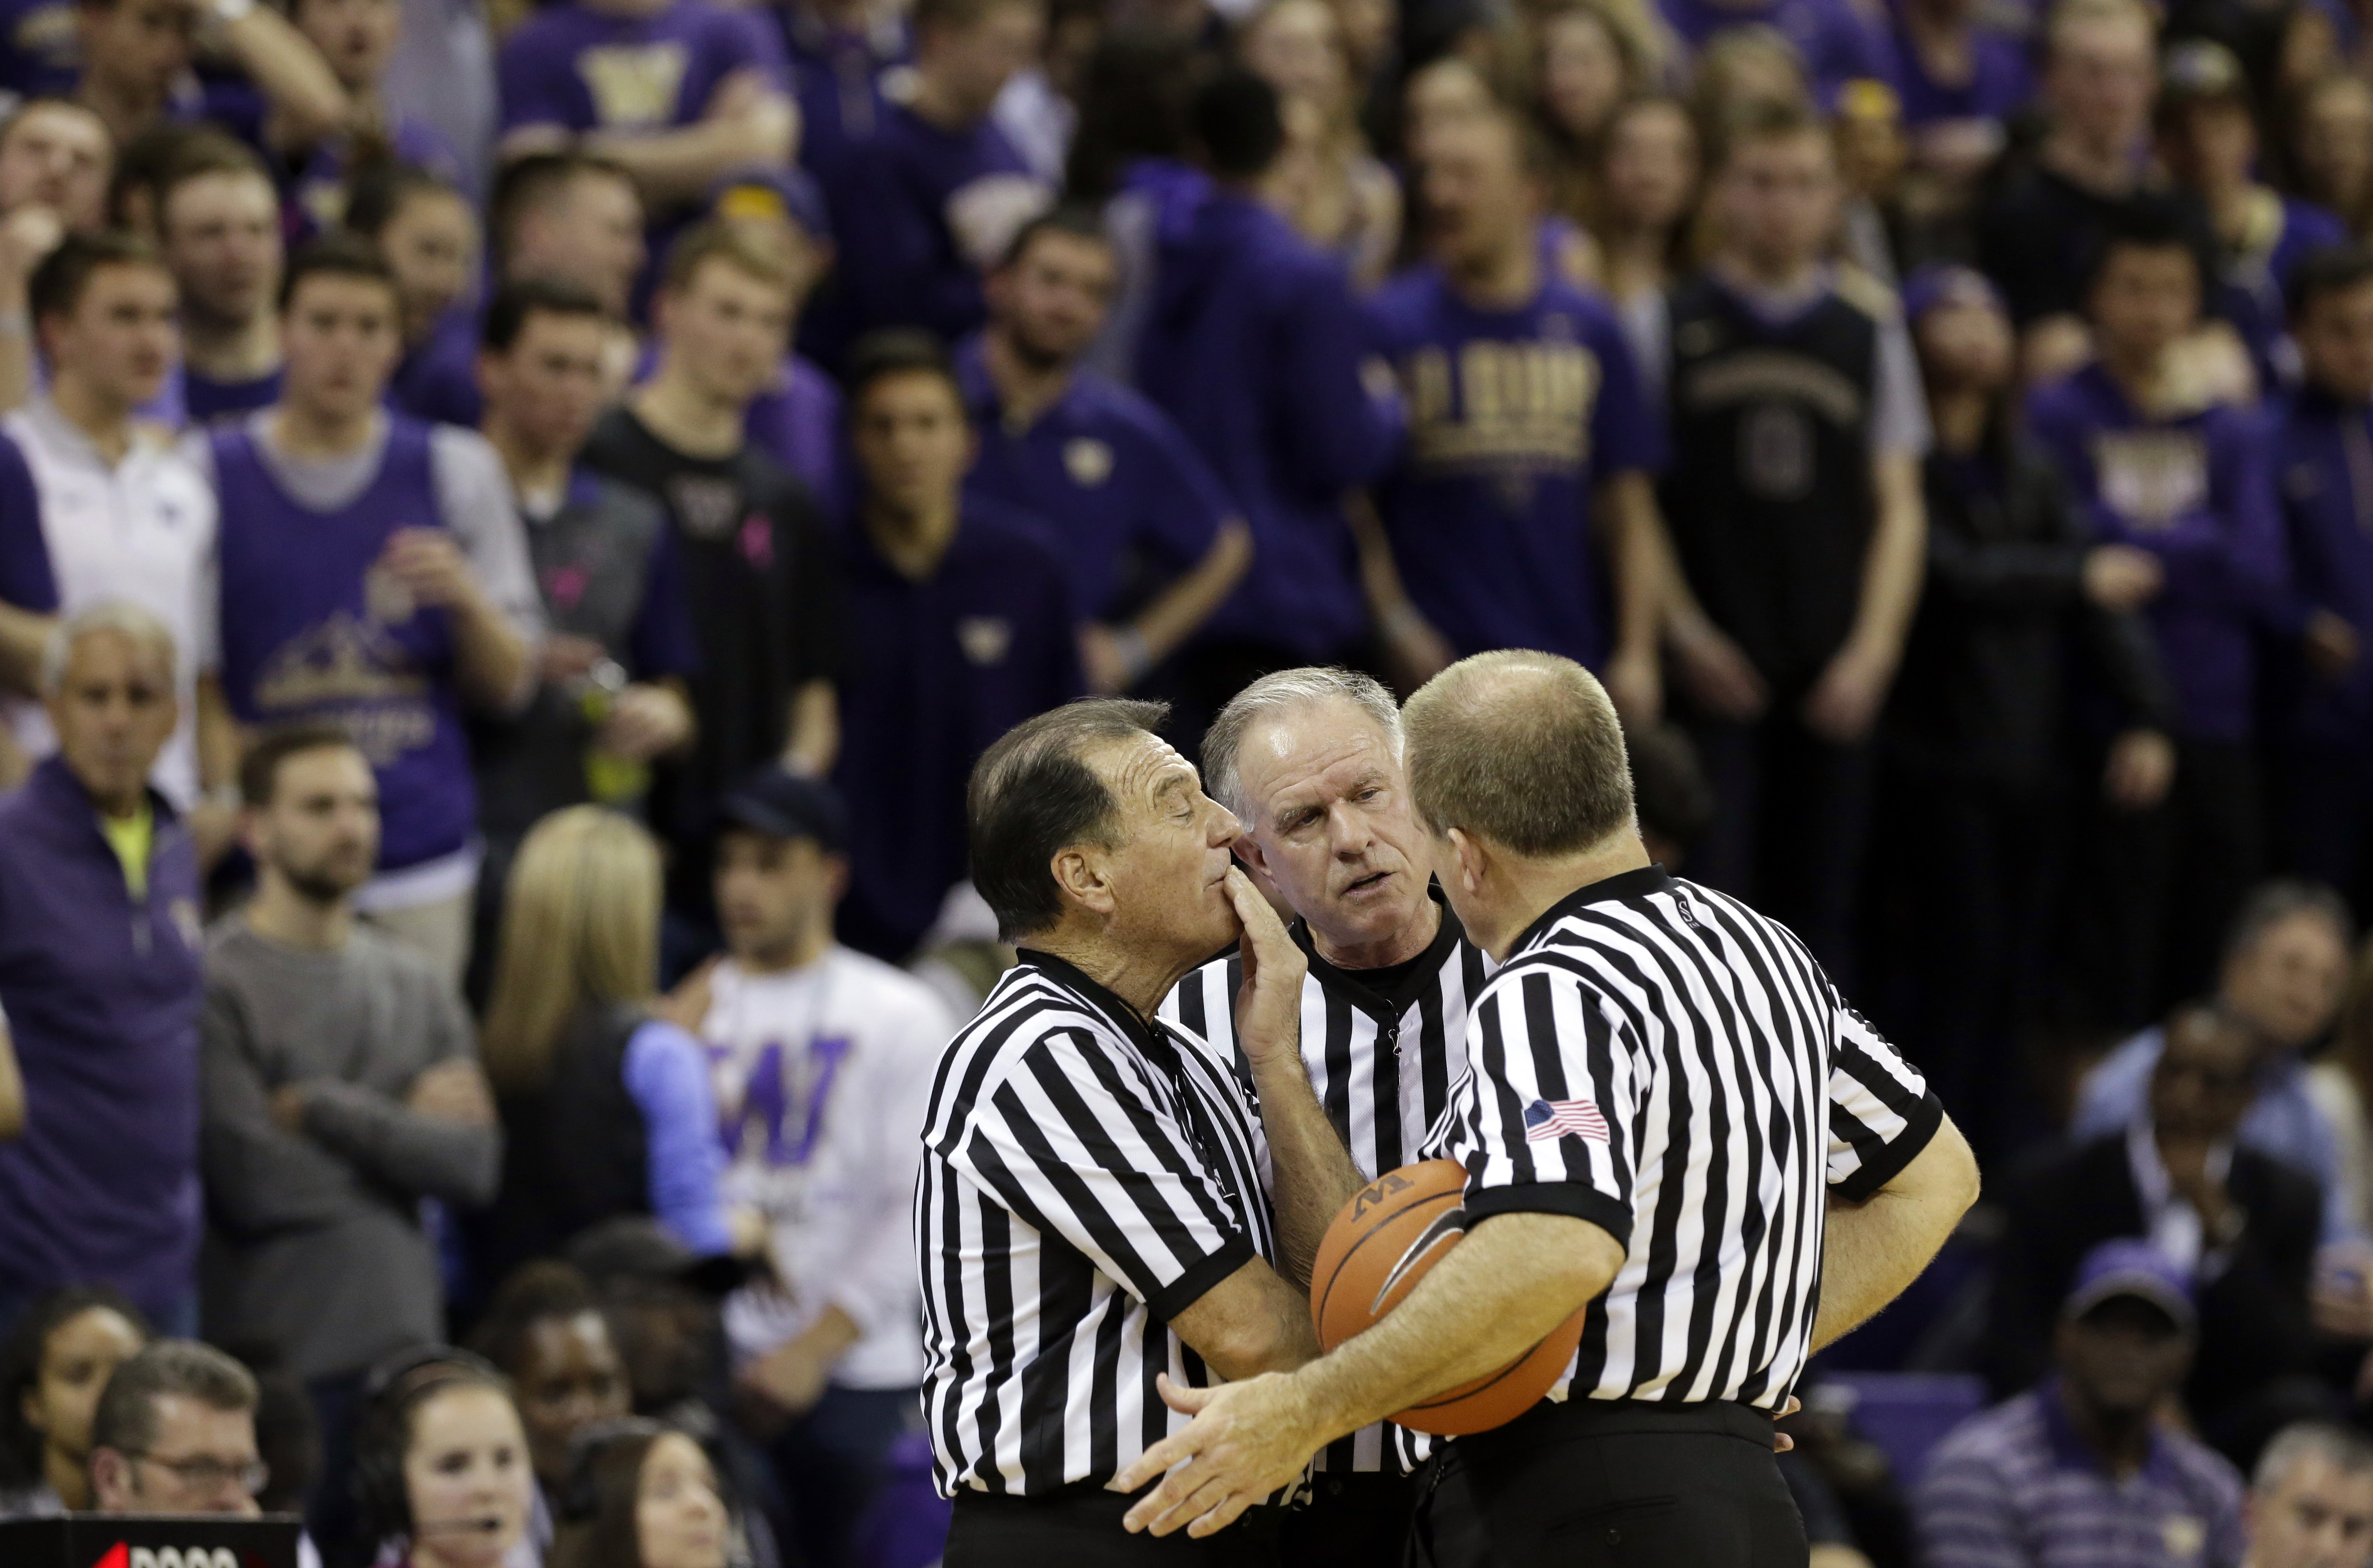 FILE - In this Wednesday Feb. 3, 2016, file photo, officials discuss a call between Washington and Arizona State during the second half of an NCAA college basketball game in Seattle. Referees undergo nearly as much scrutiny as the teams that want to join